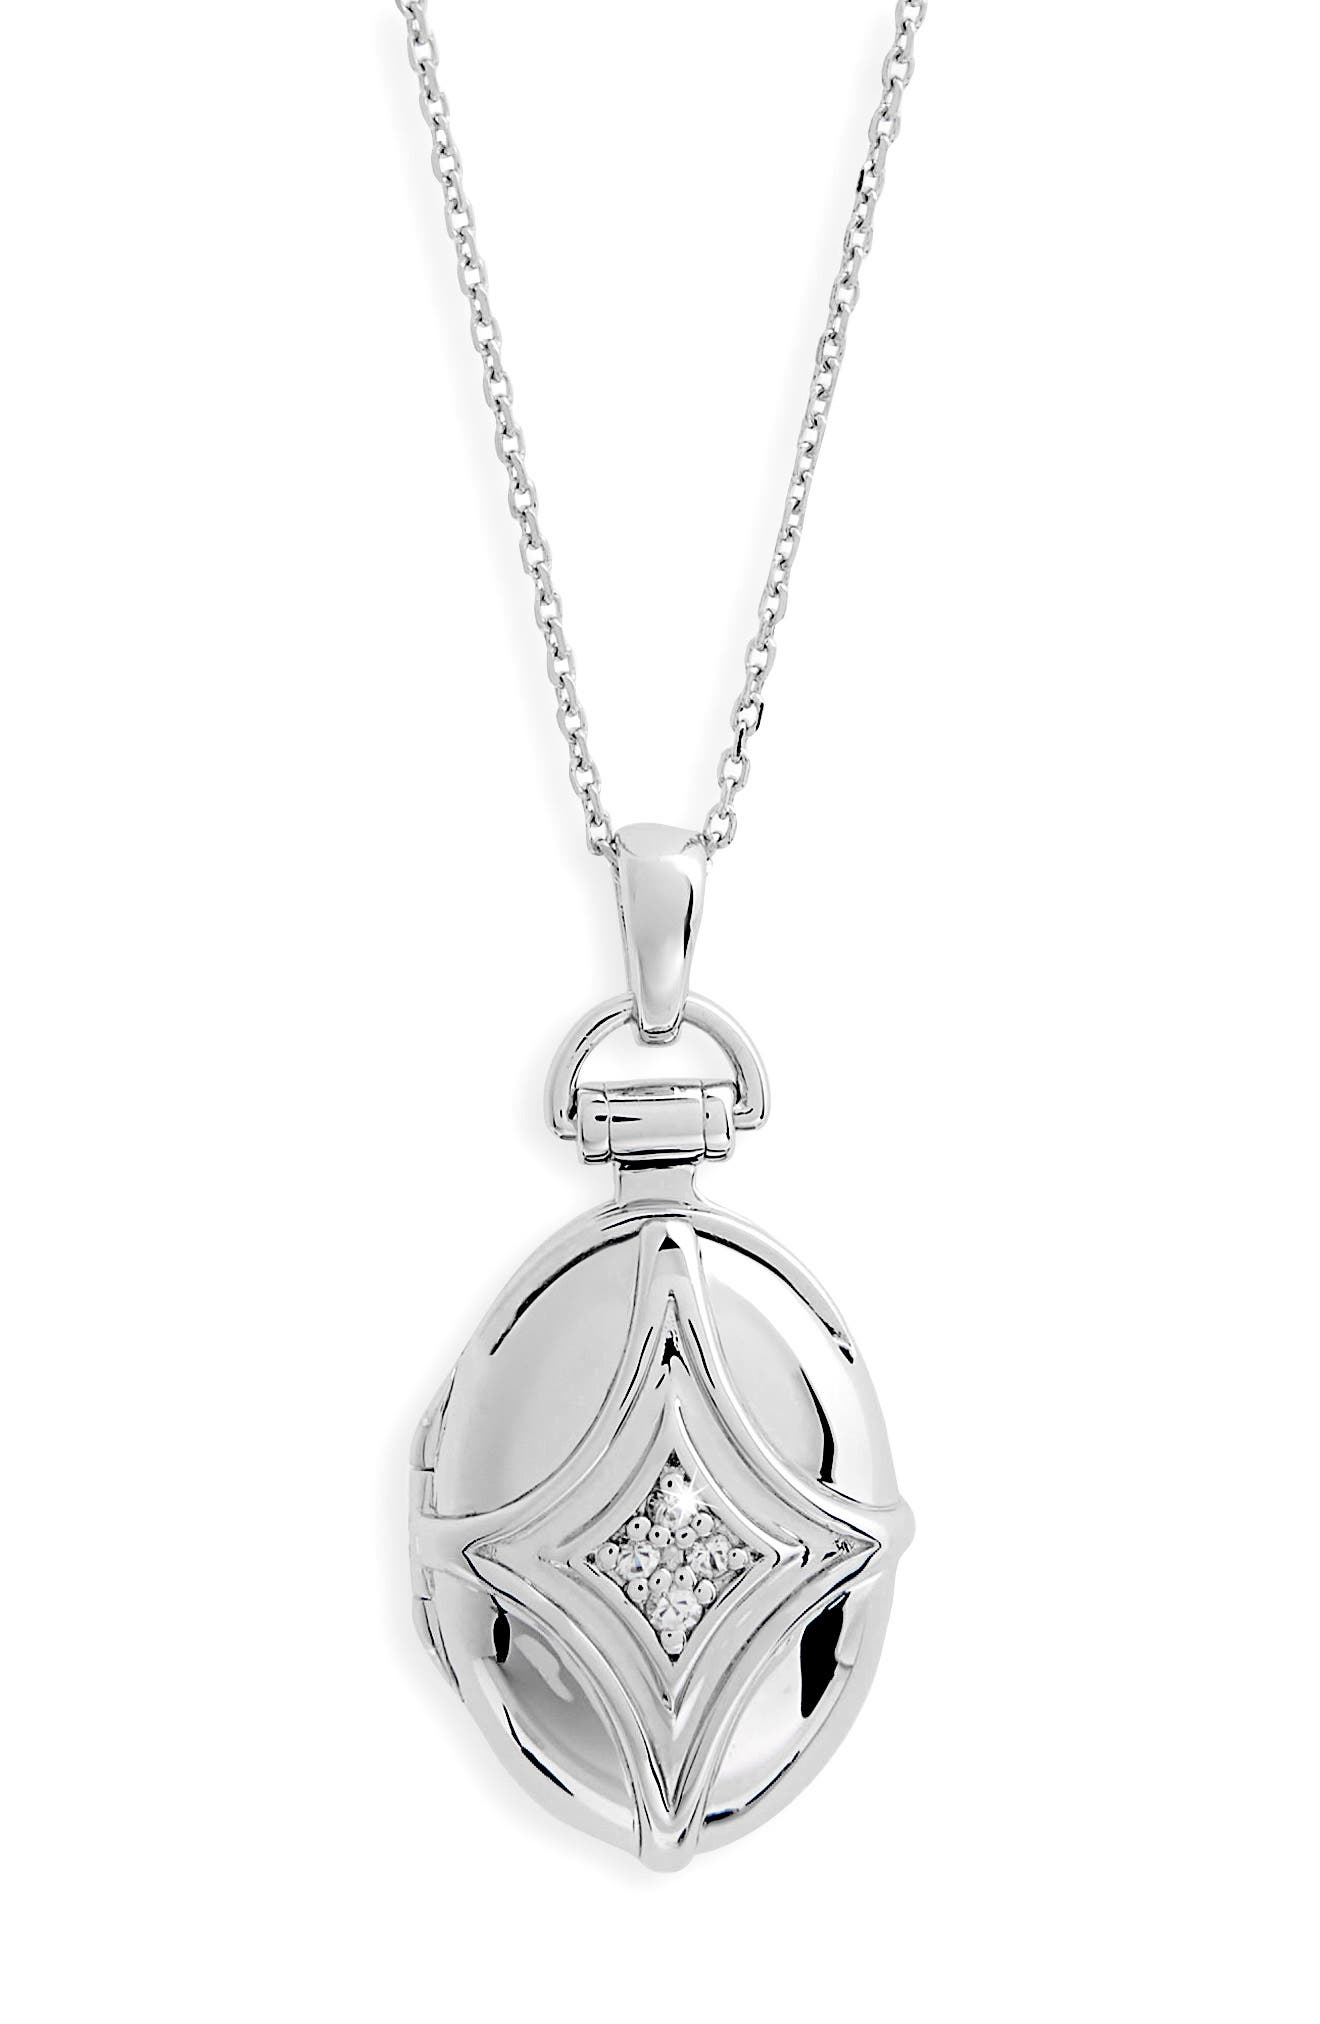 White Sapphire Bridle Locket Necklace,                             Alternate thumbnail 2, color,                             STERLING SILVER